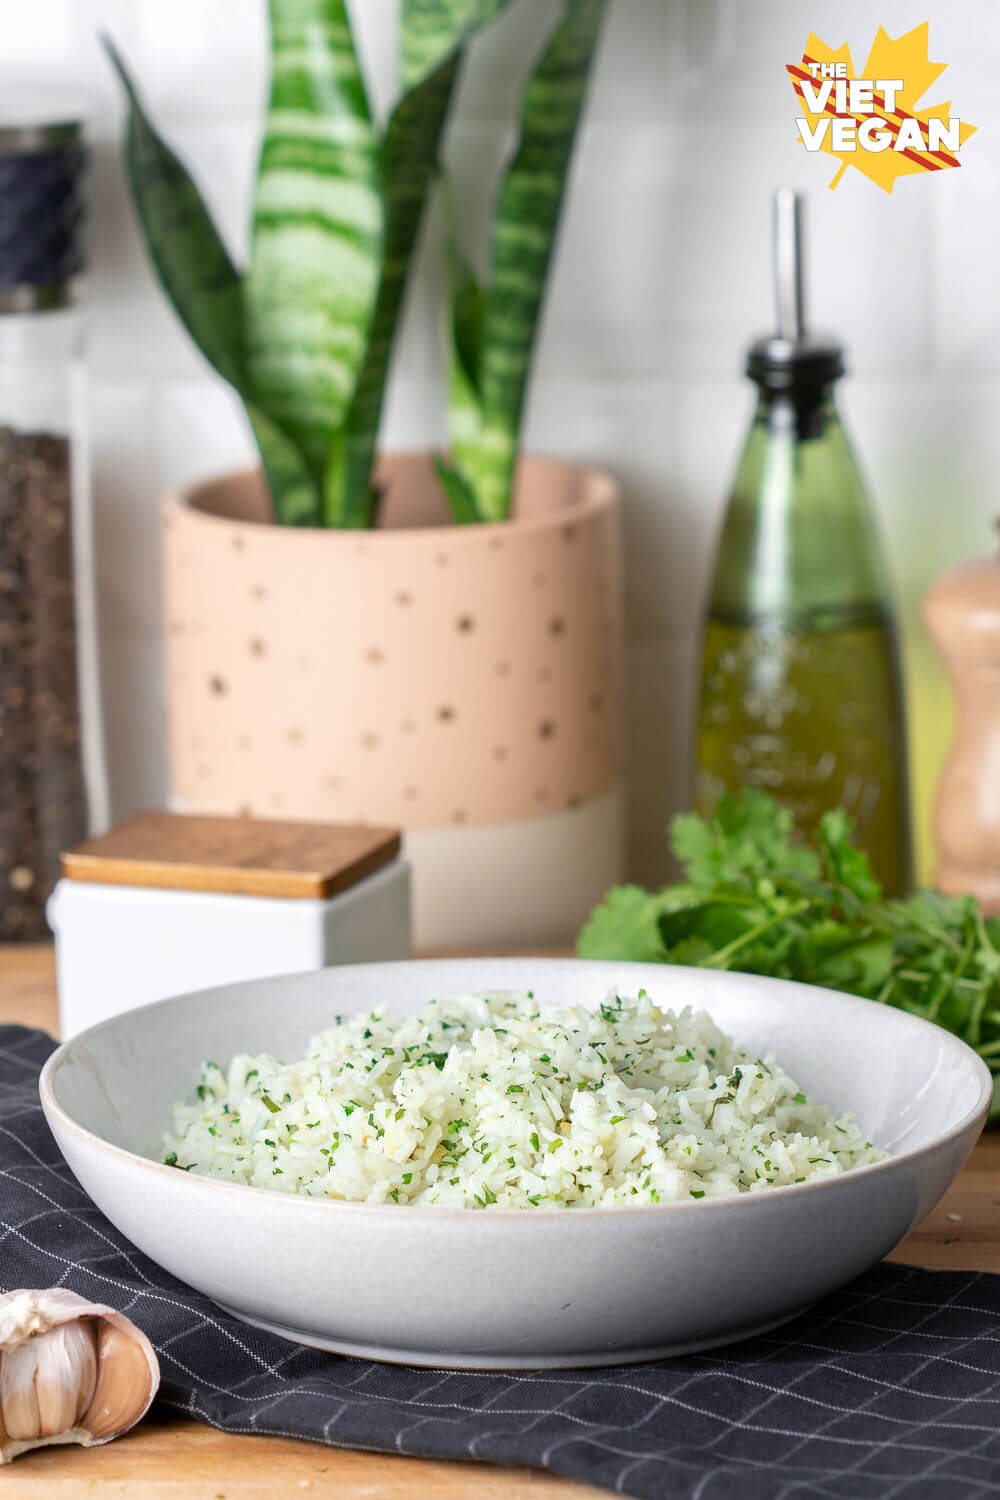 finished rice dish on a tea towel, with cilantro and a snake plant in the background